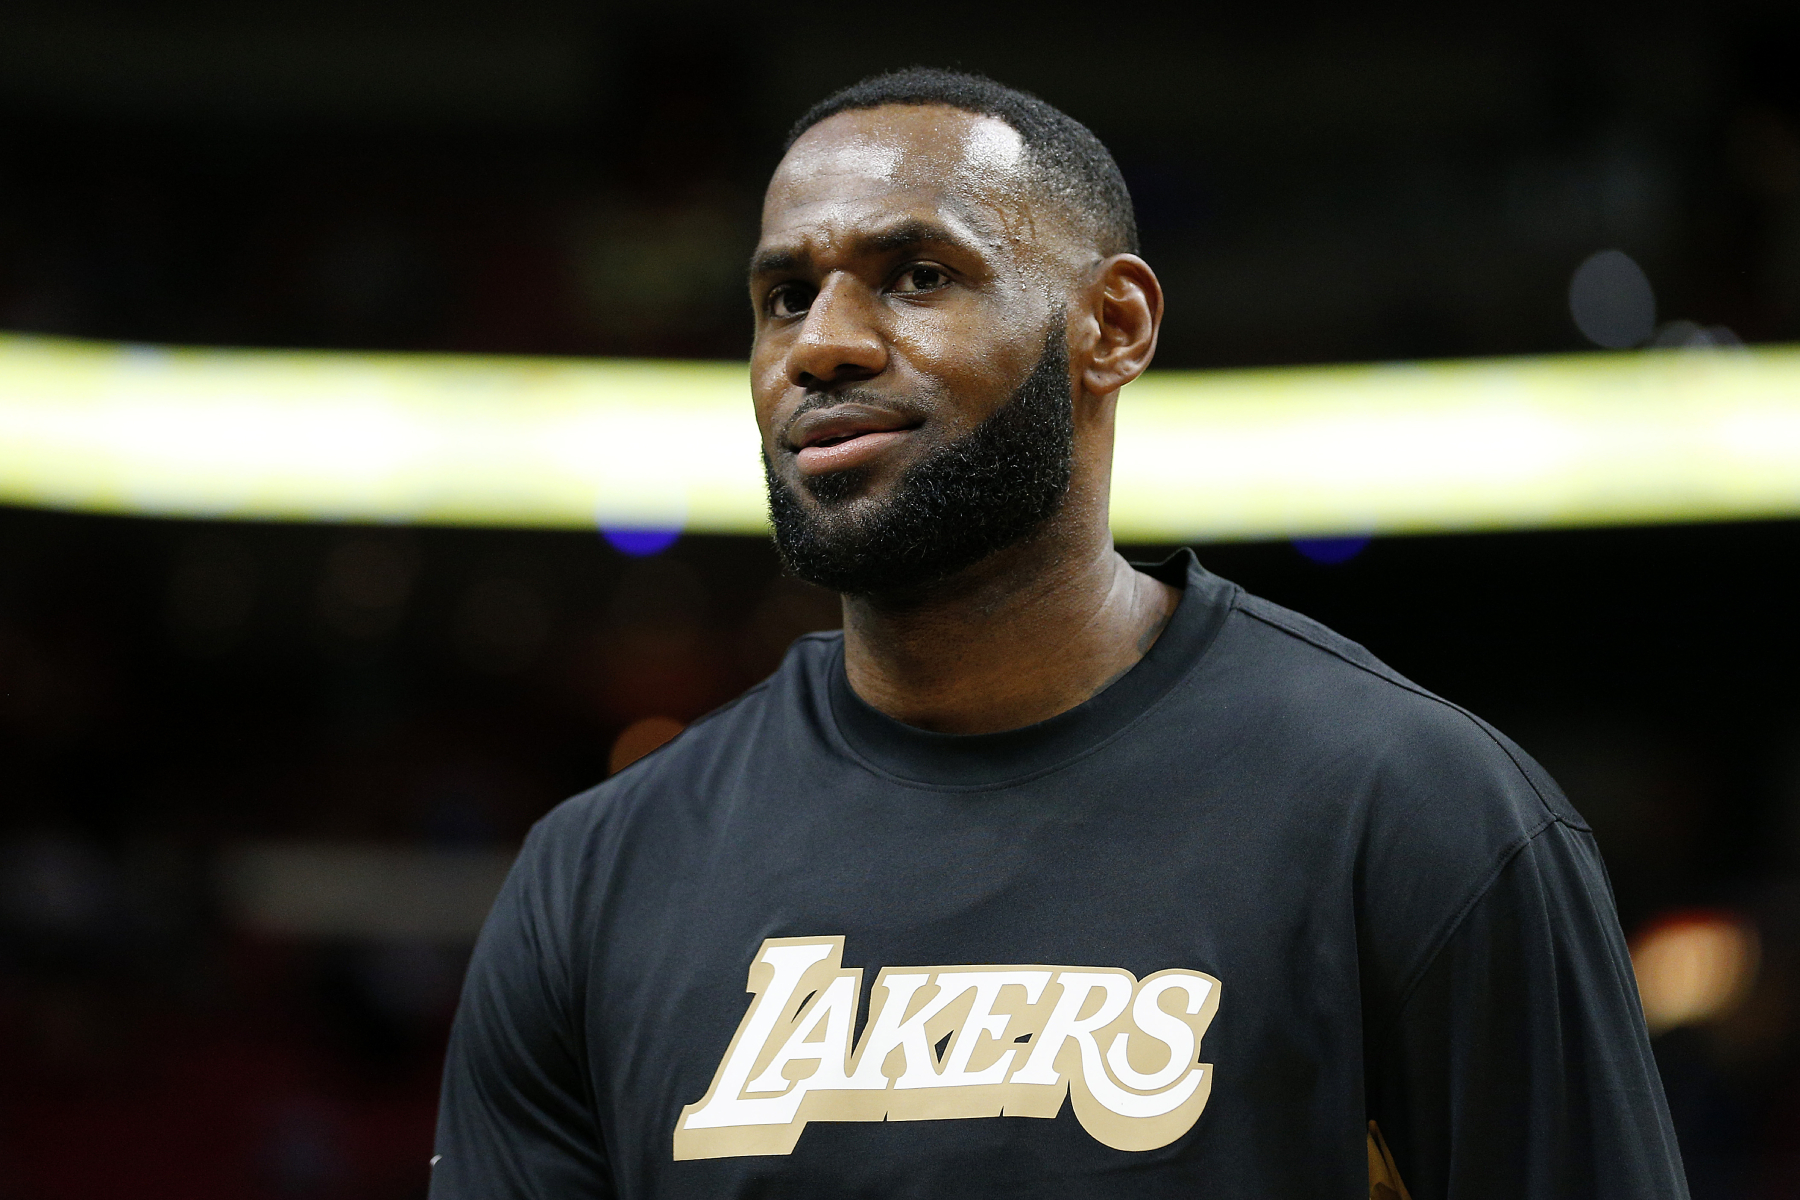 LeBron James is not only excellent on the basketball court, but he has made a massive impact off of it. He is now helping ex-felons.